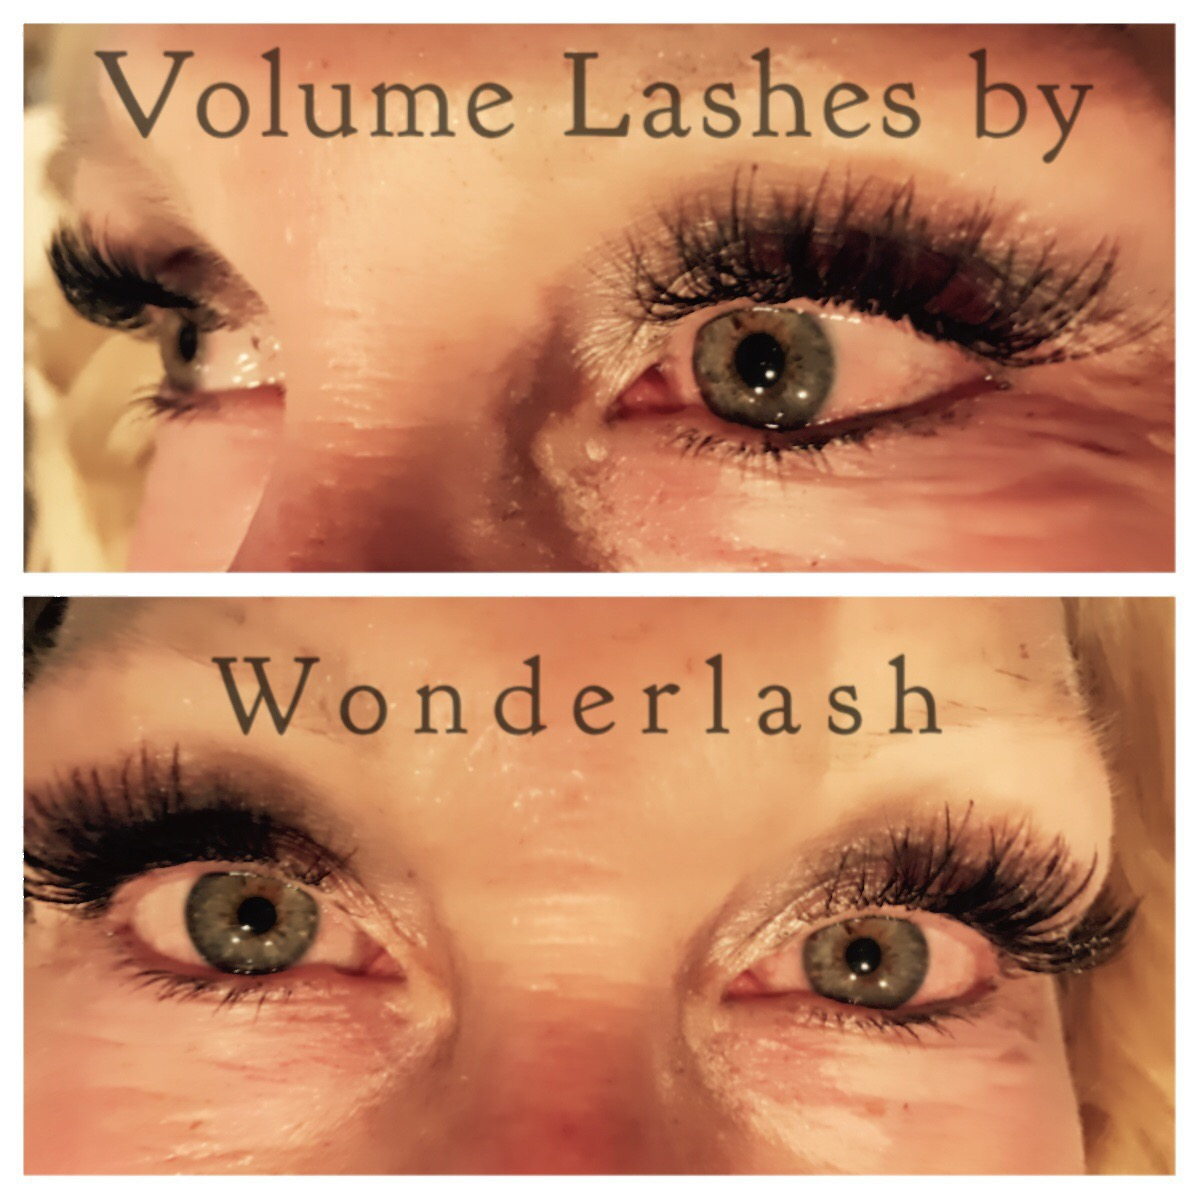 Volume Lashes @WonderlashLA